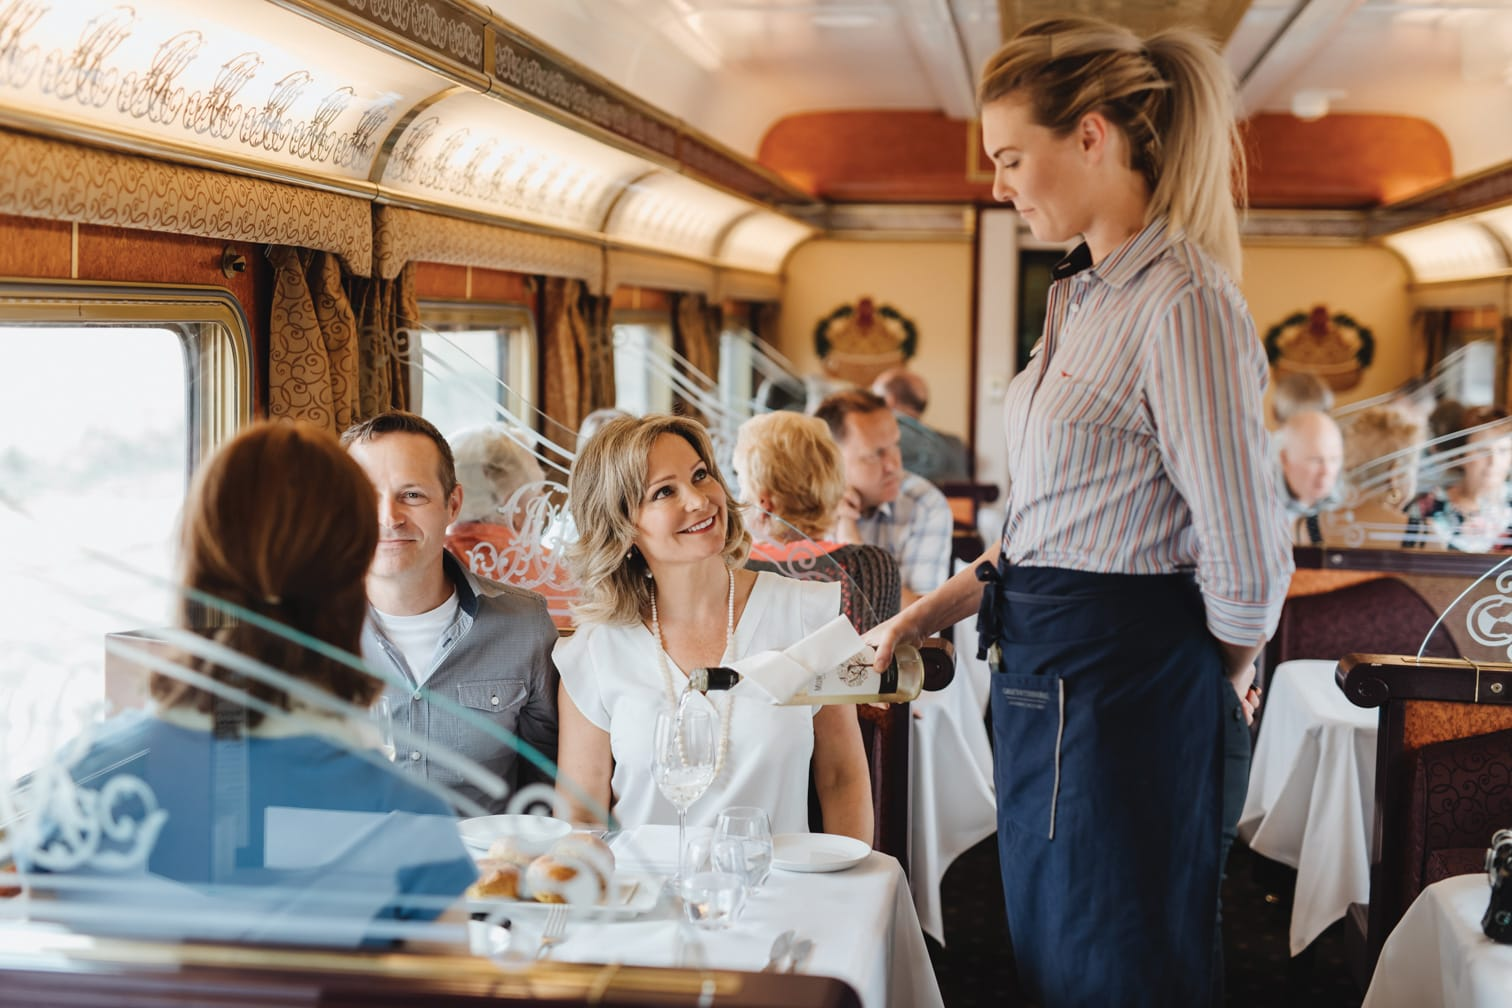 Server on the Ghan train pouring wine